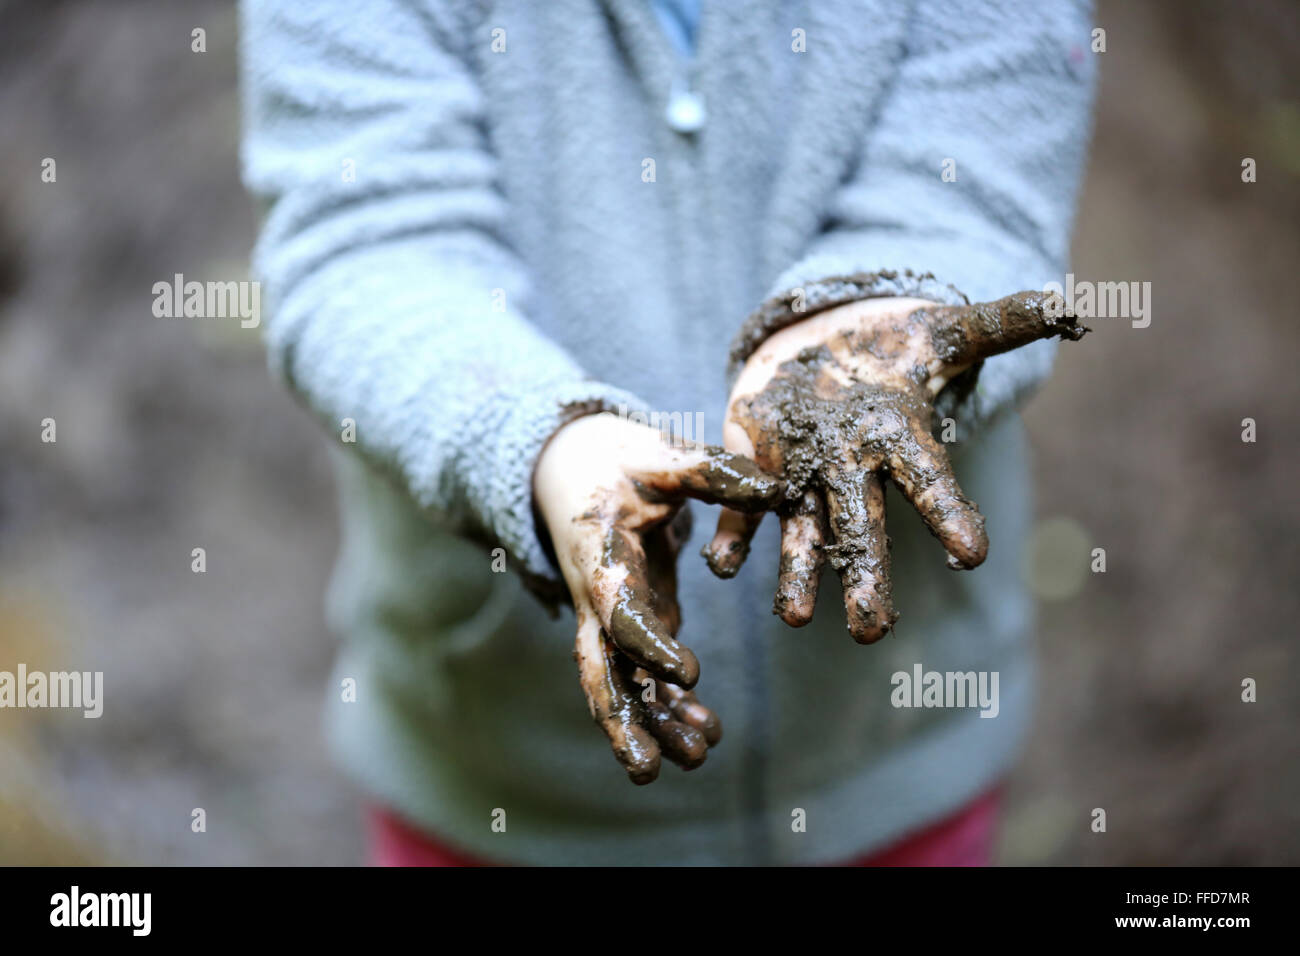 A young child shows off her dirty hands covered in thick wet mud. - Stock Image